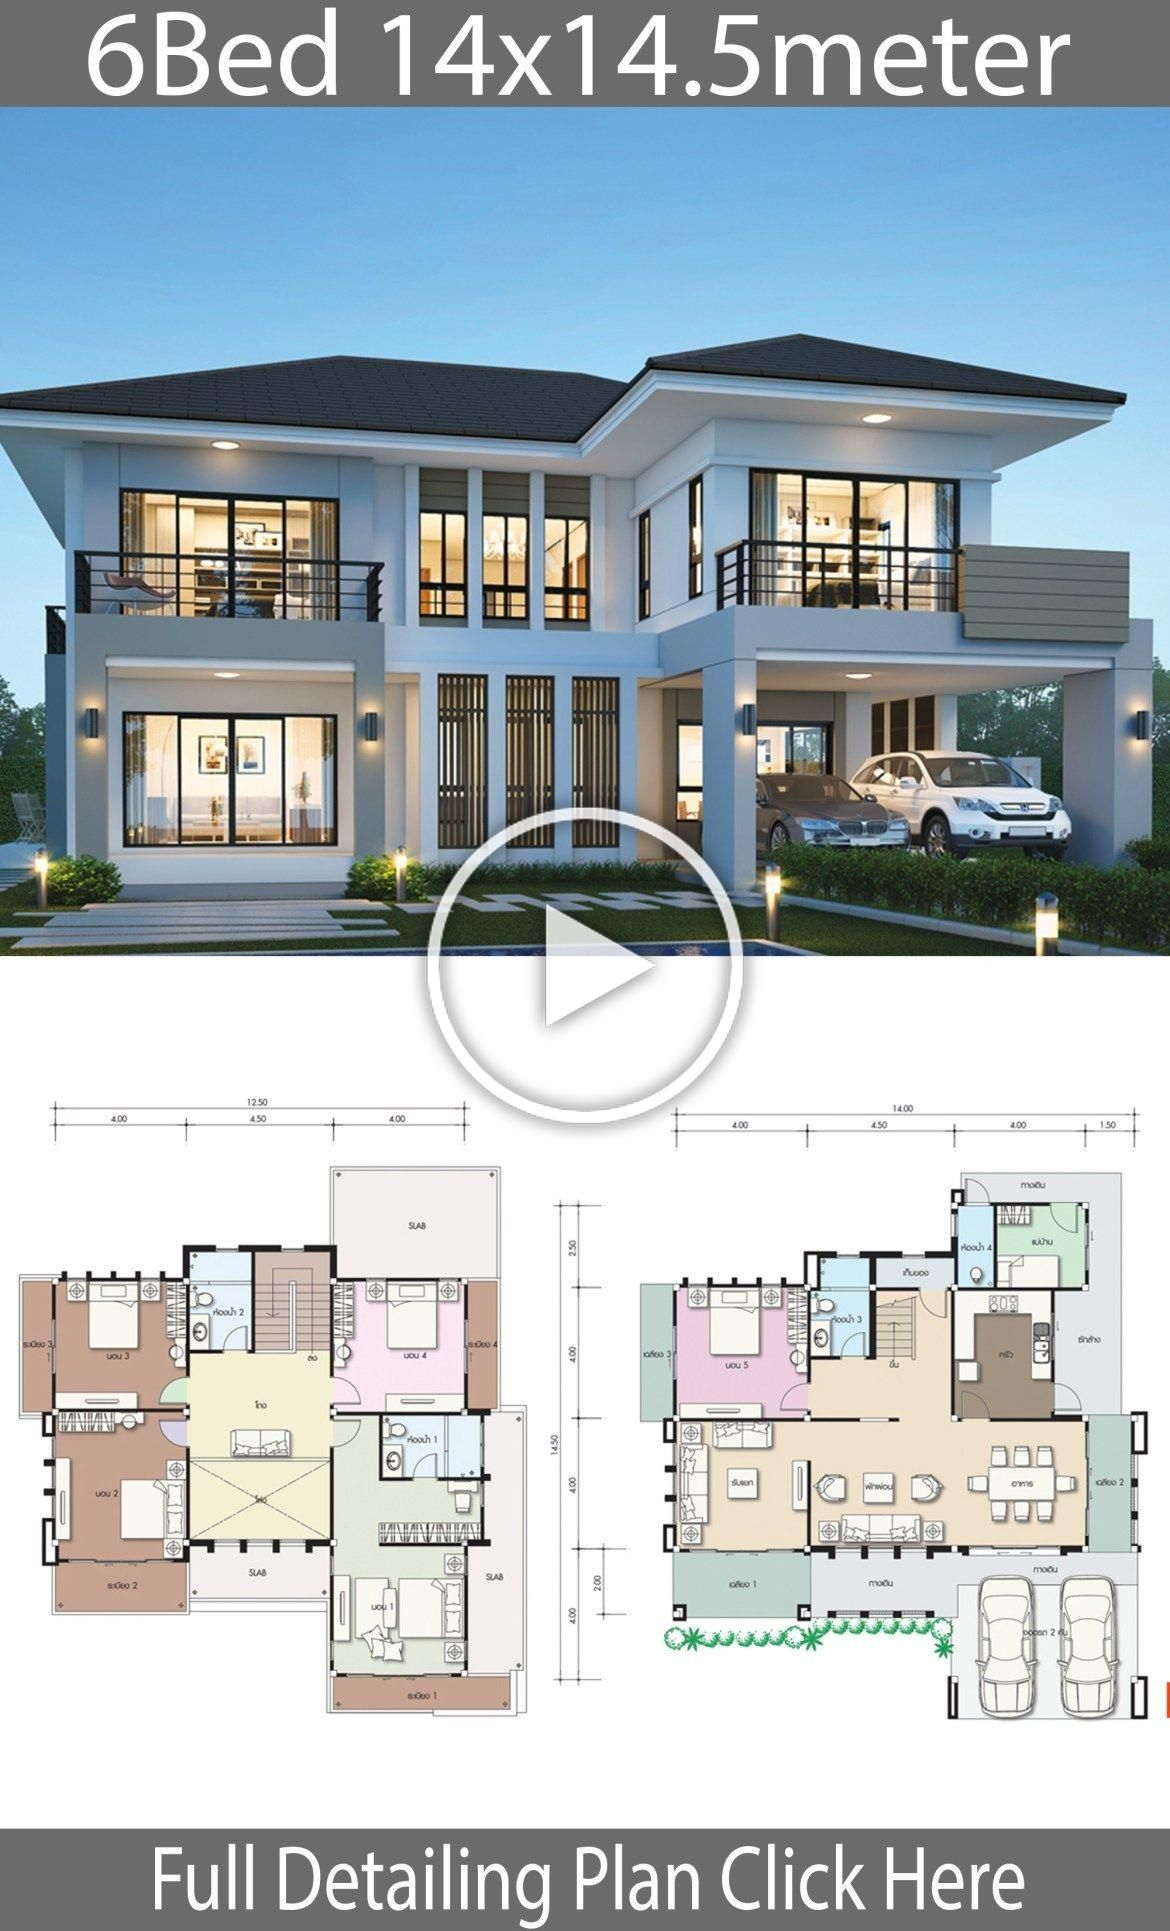 House Design Plan 14x14 5m With 6 Bedrooms Home Design With Plansearch In 2020 Beautiful House Plans Architectural House Plans Model House Plan